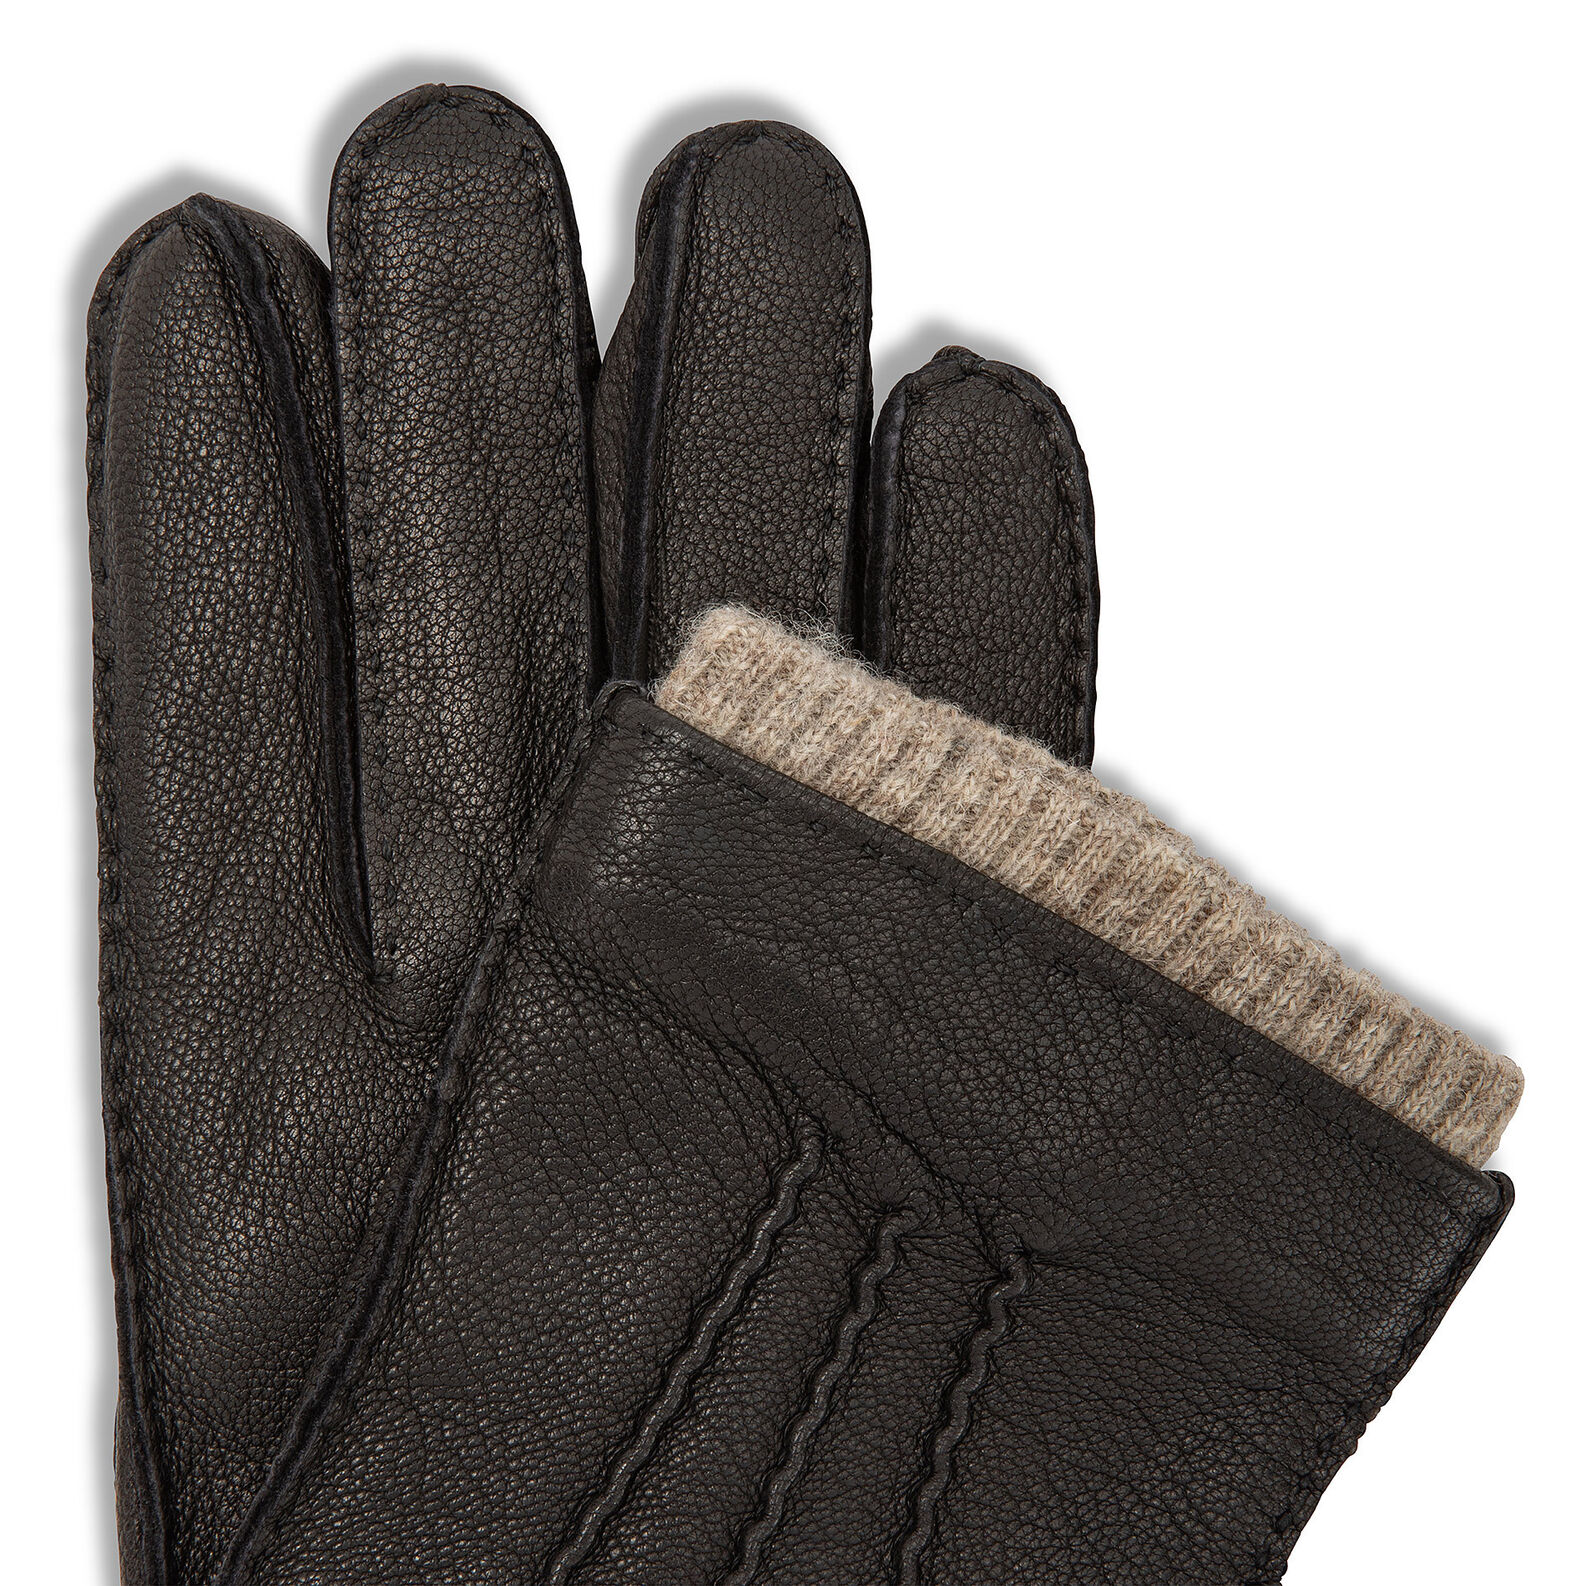 Luca D'Altieri genuine leather gloves